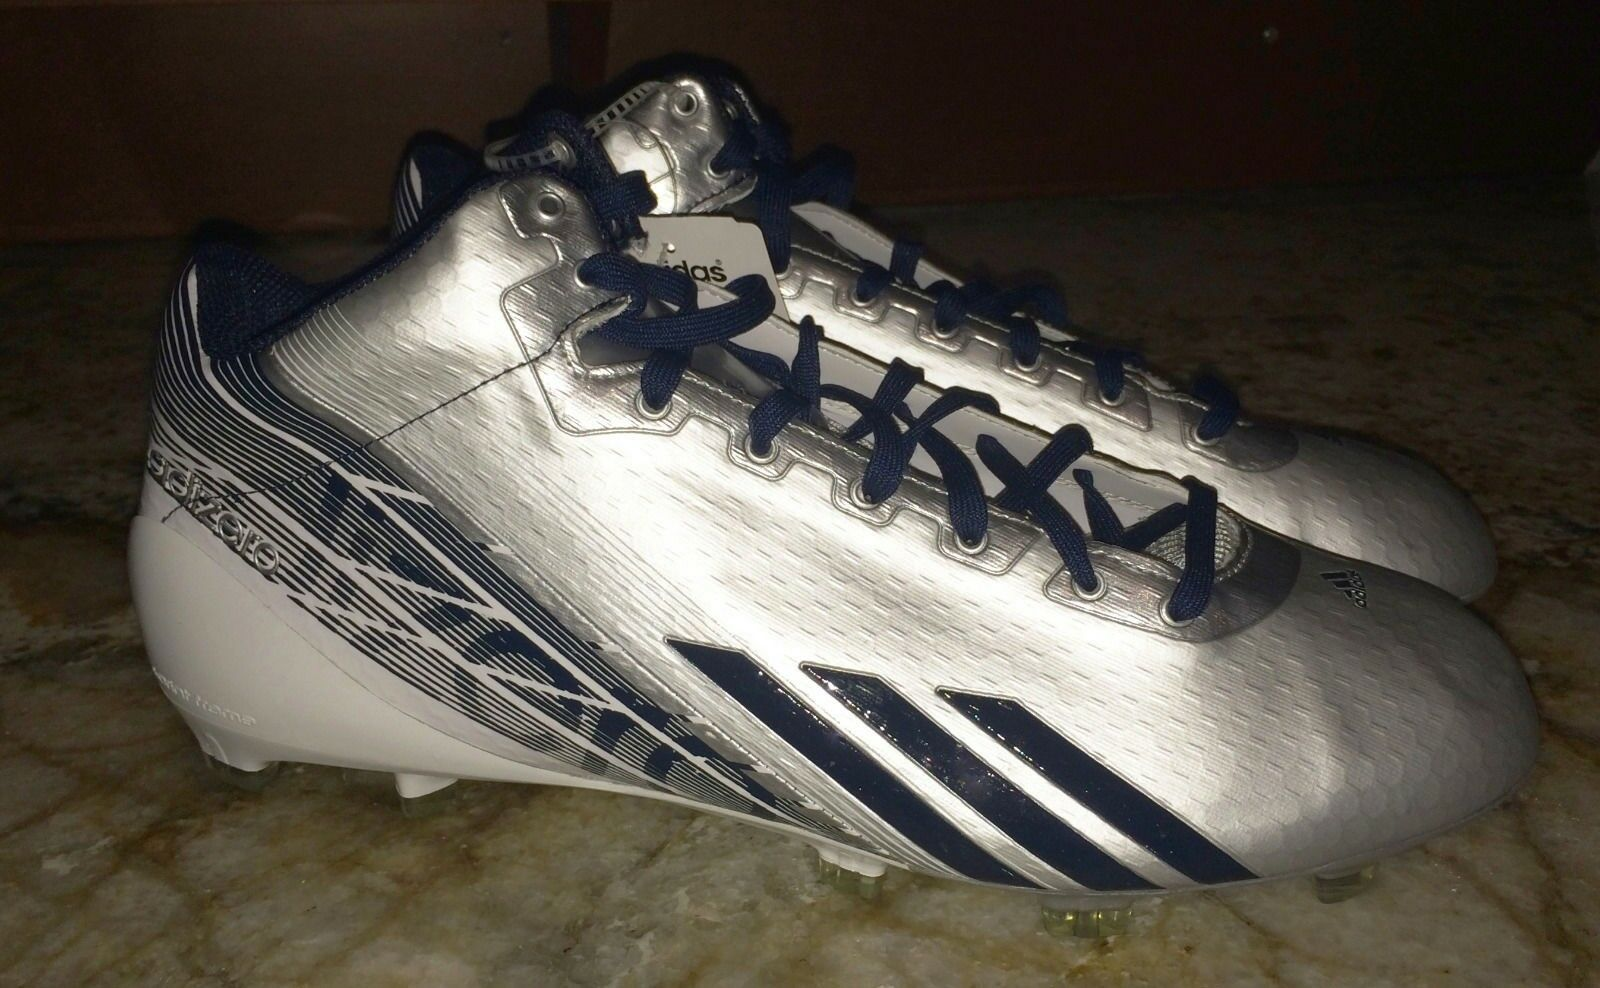 ADIDAS Adizero 5 Star 3 4 2.0 2.0 2.0 Silver Navy Whi Molded Football Cleats NEW Mens 13 95acfa